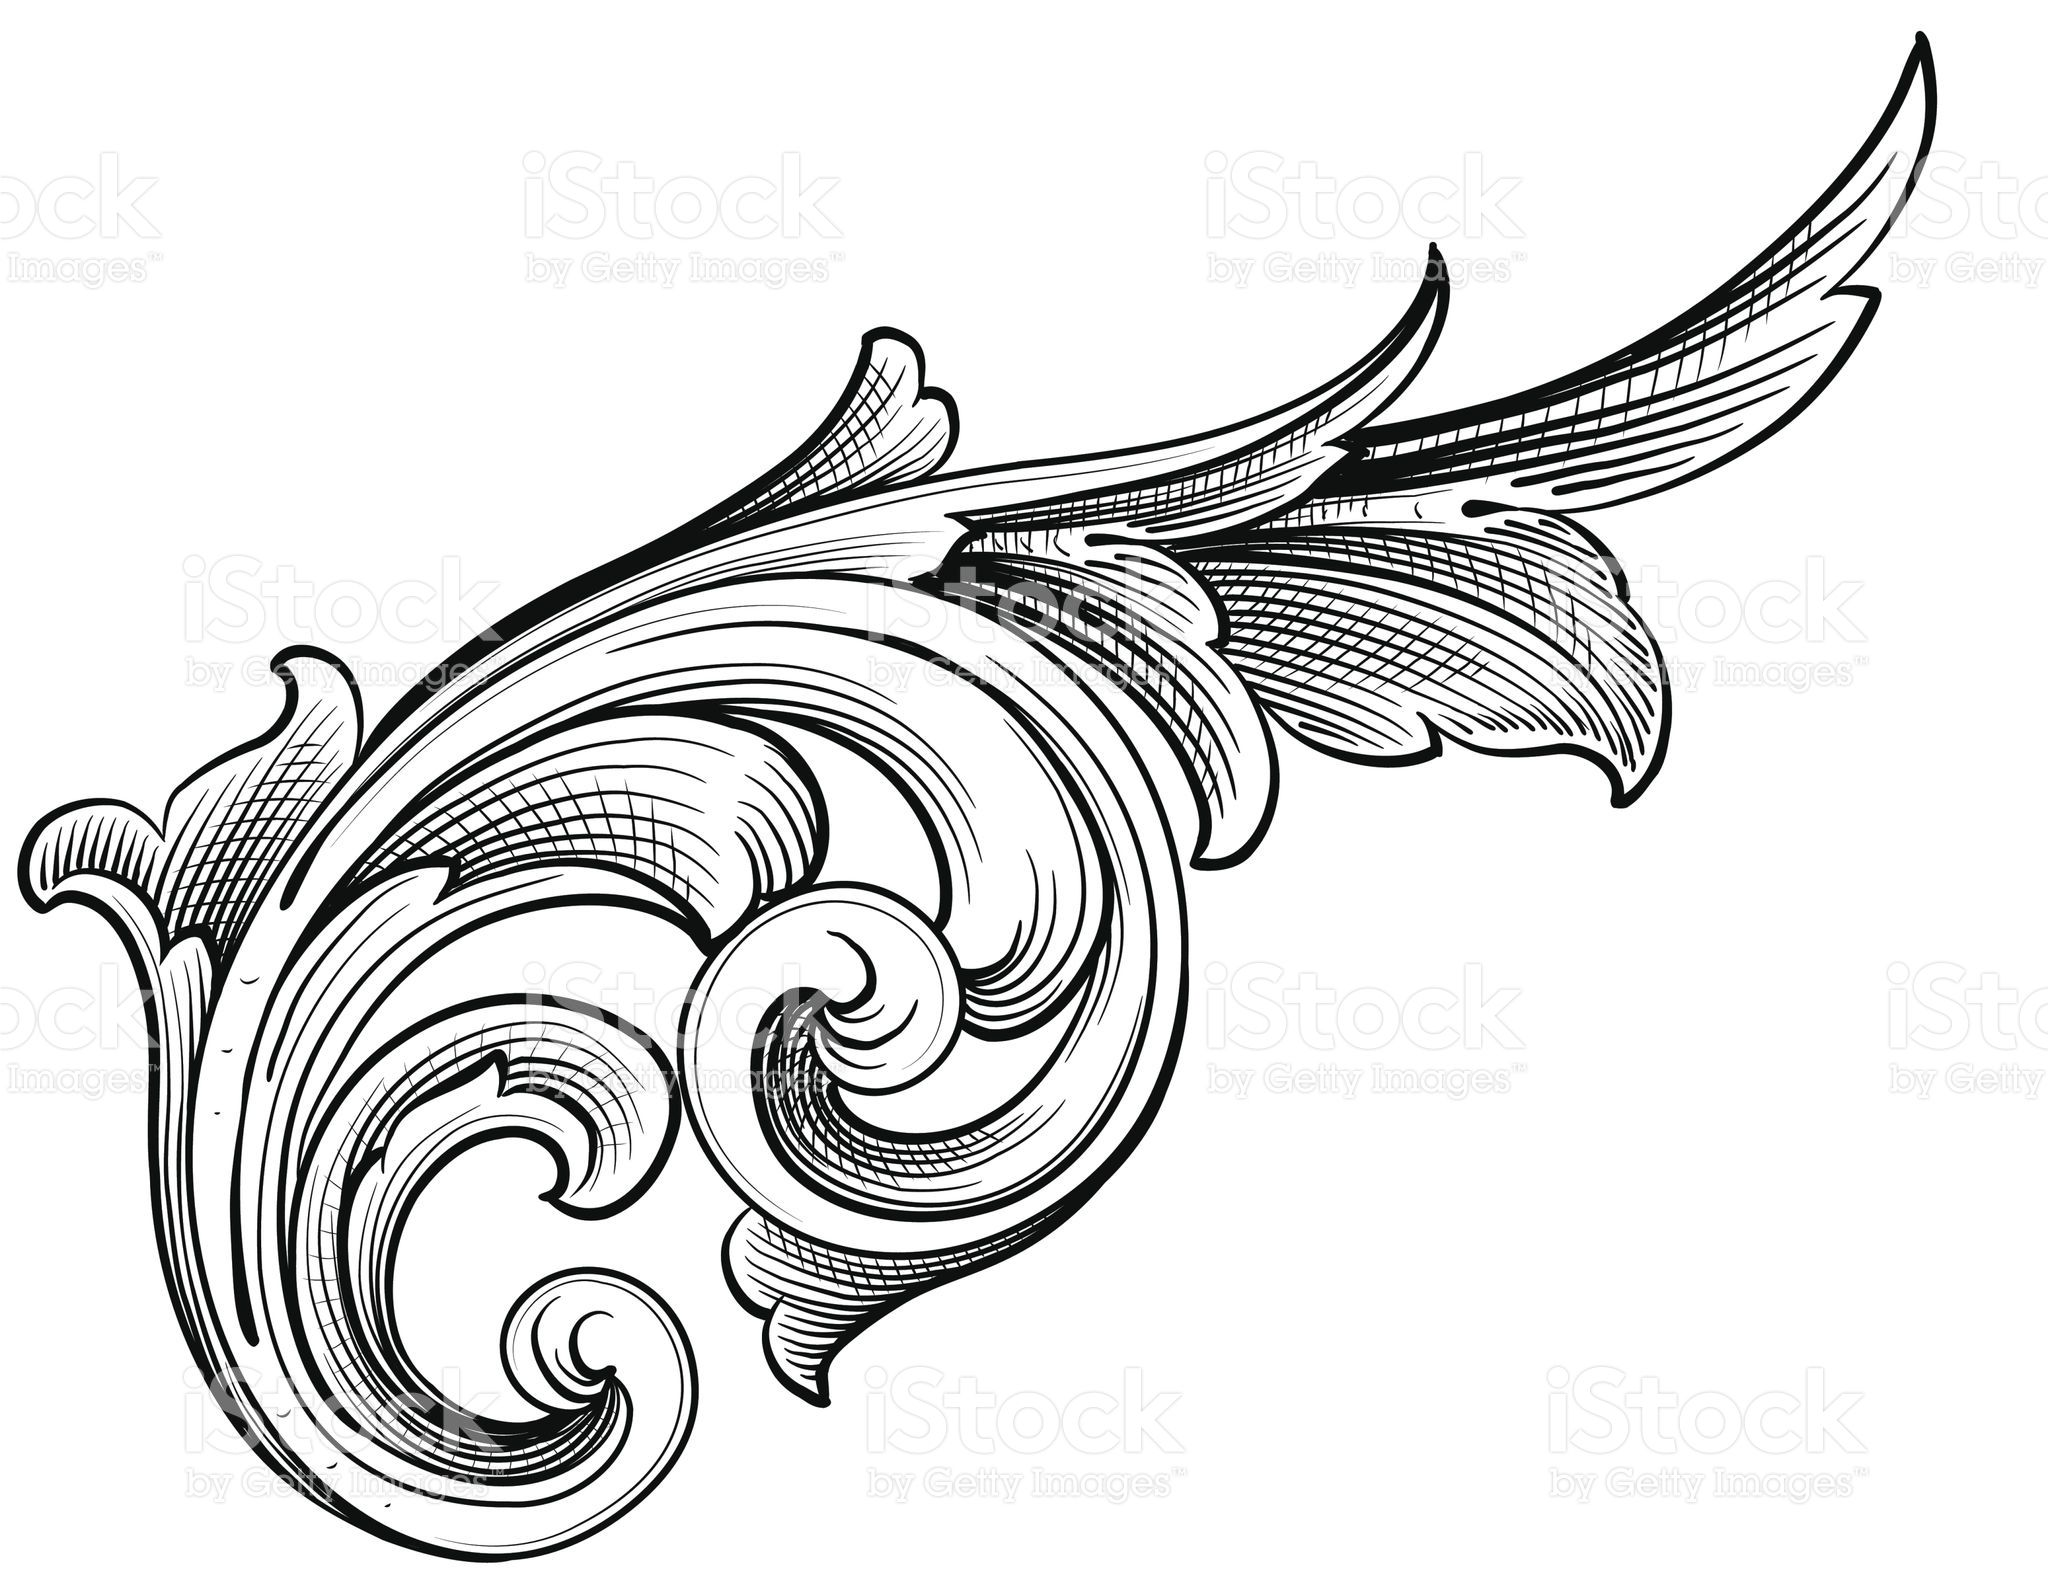 Designed by a hand engraver, this carefully drawn and